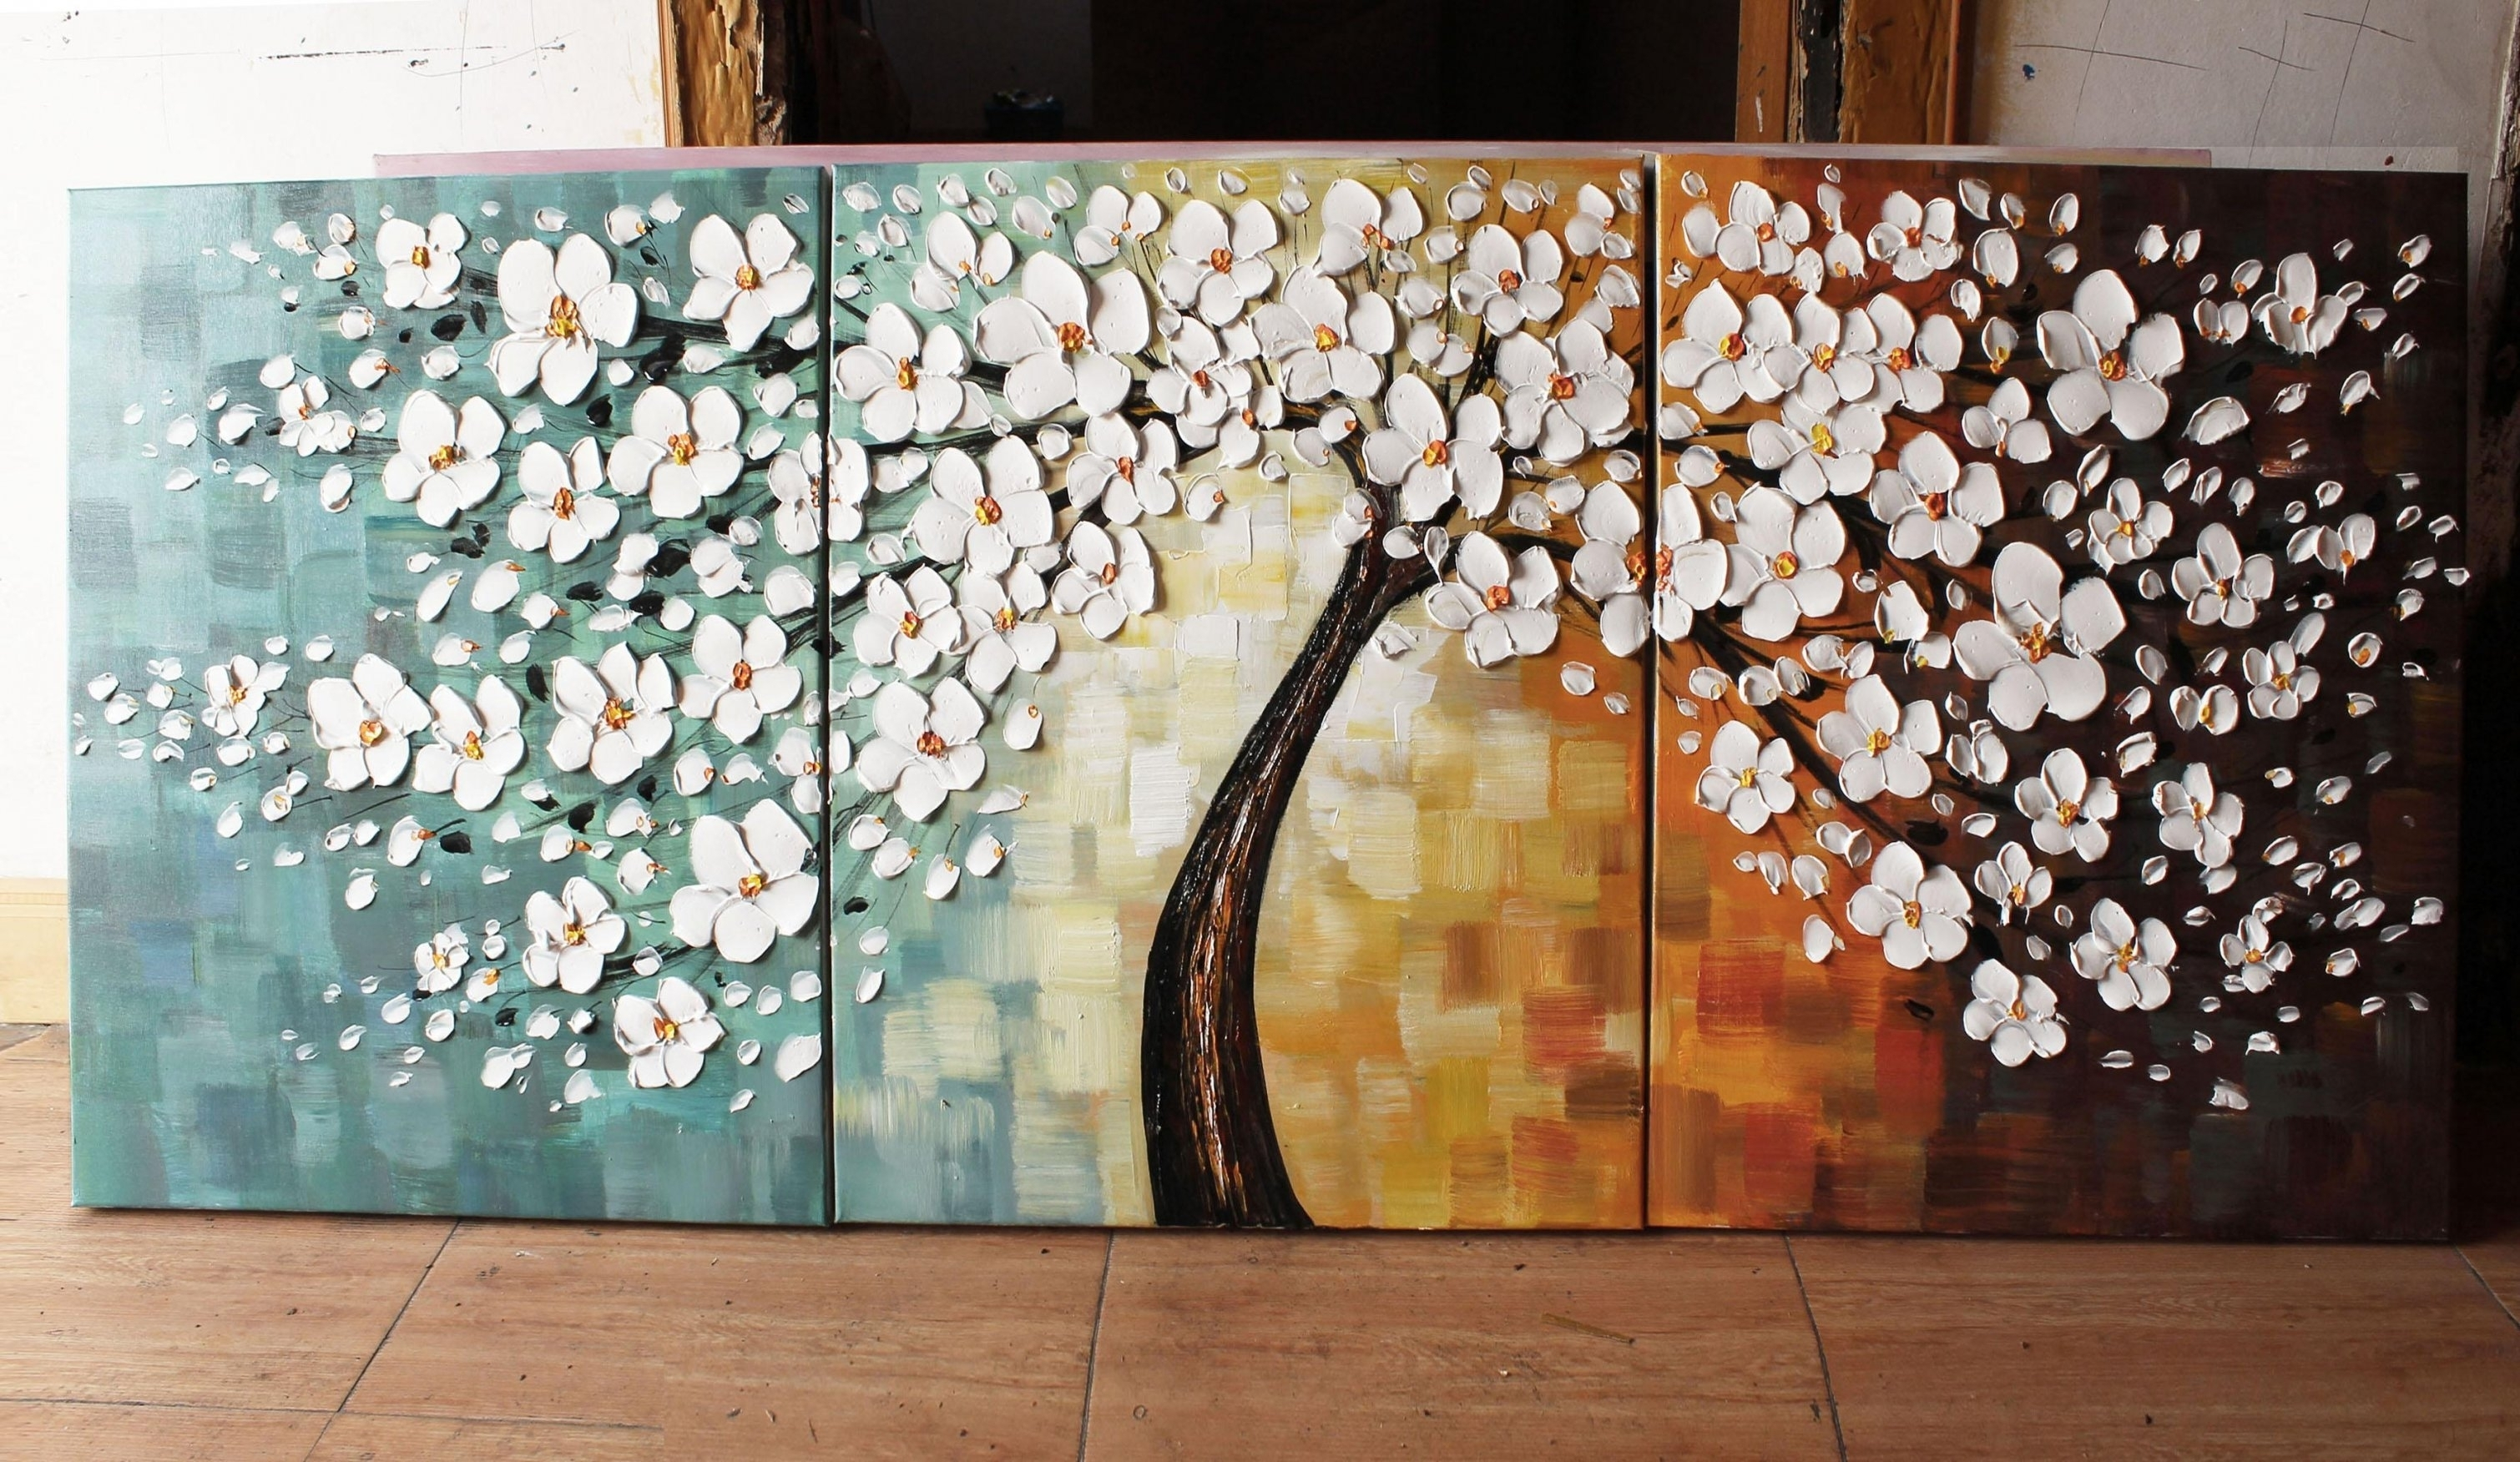 Best Of Wall Art Paintings Cheap | Wall Decorations Regarding Most Up To Date Wall Art Paintings (View 10 of 20)